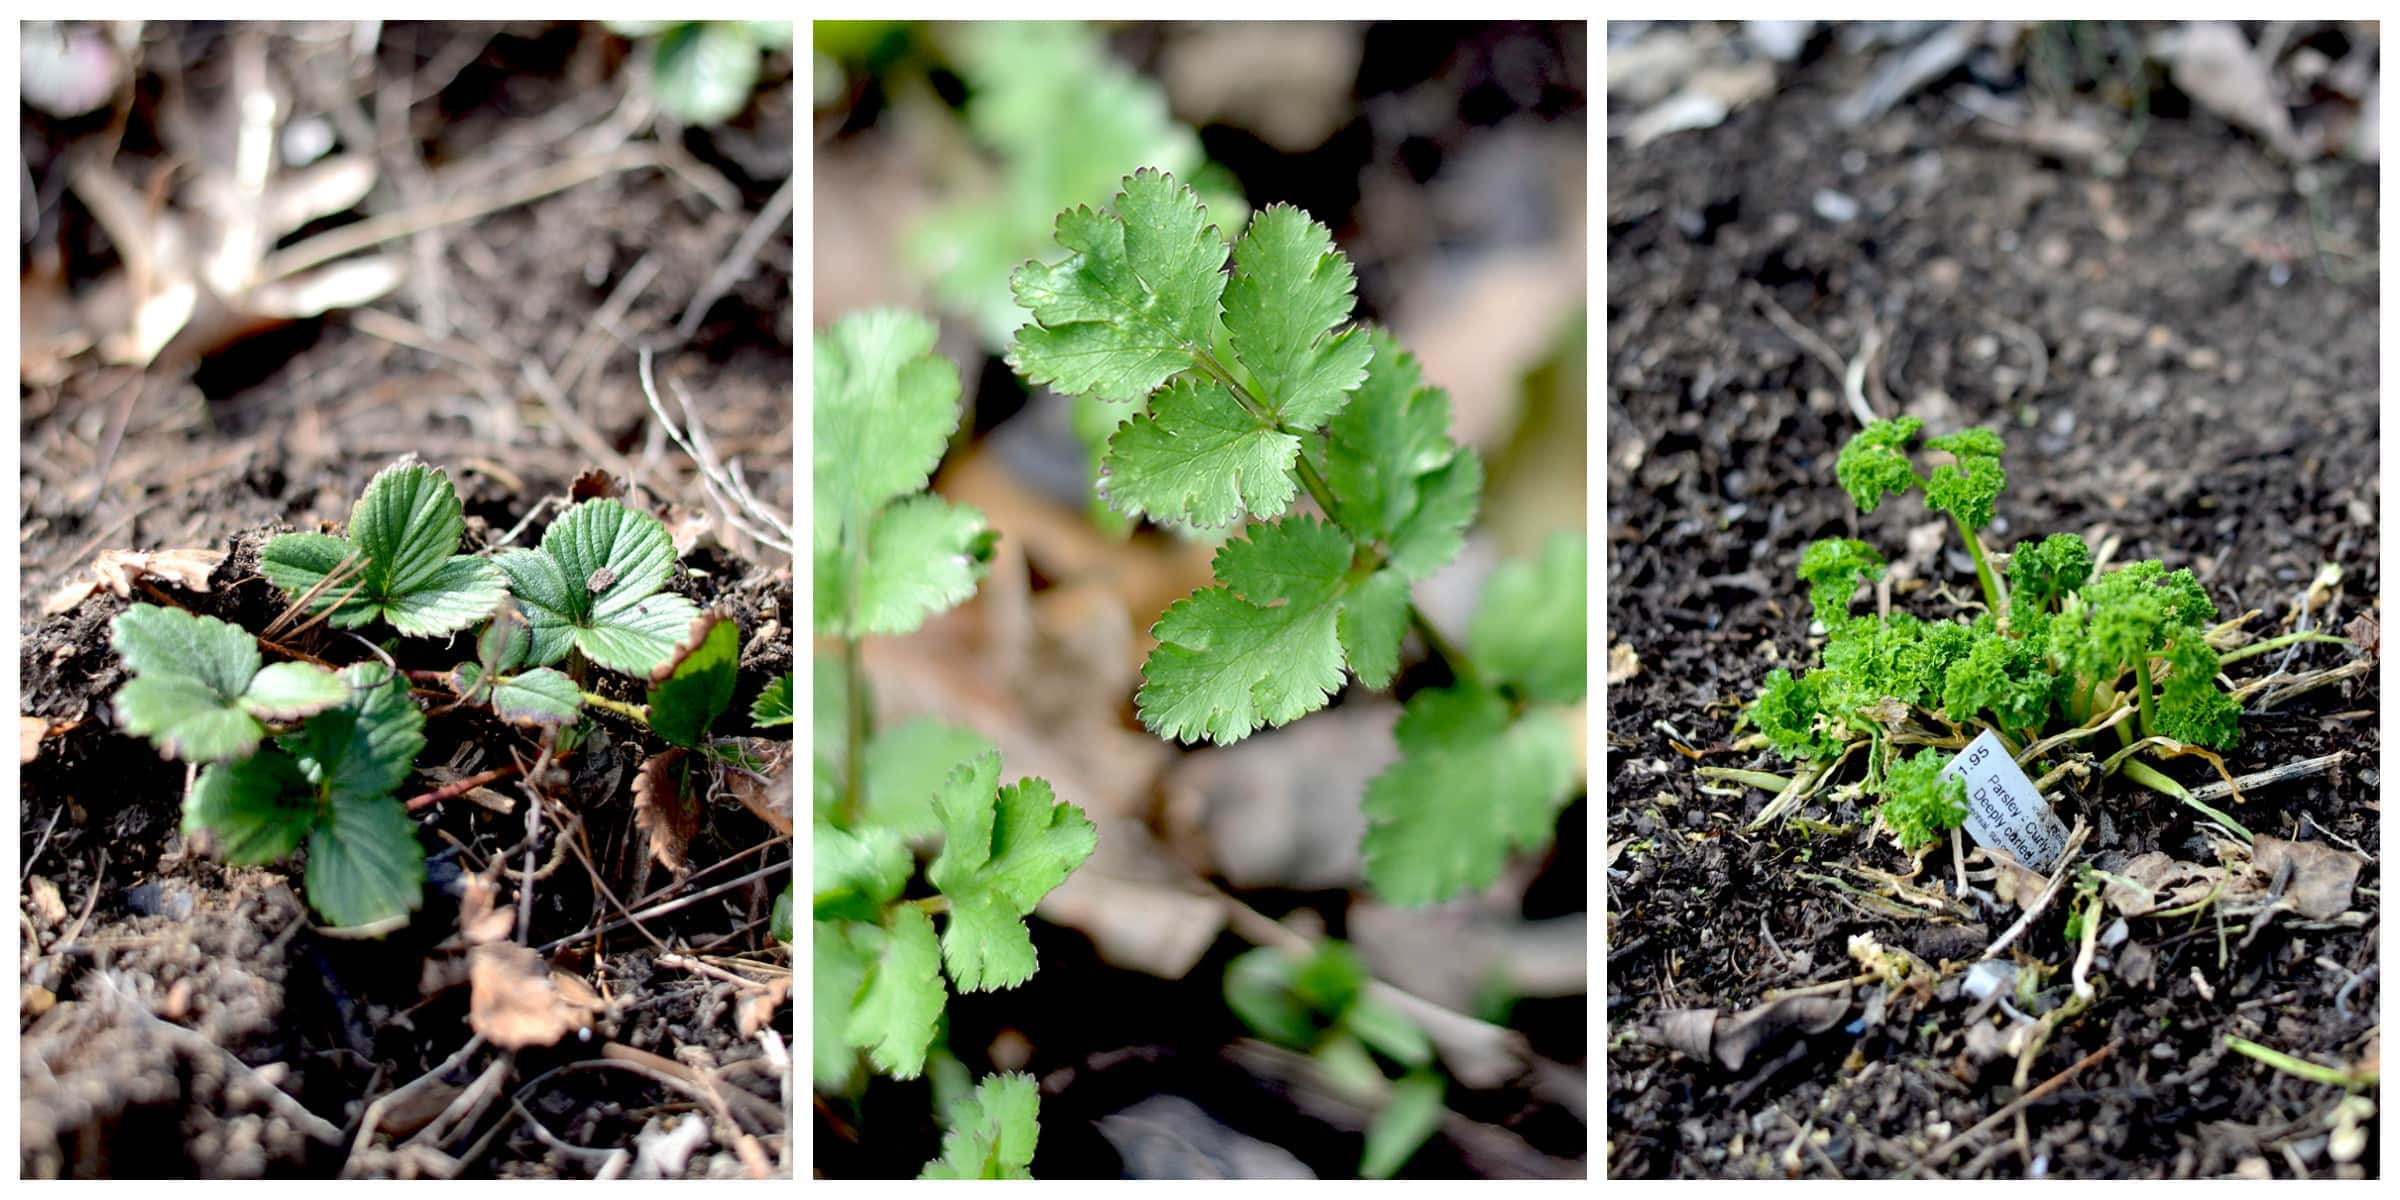 The arrival of spring means its time to start working on your vegetable and herb gardens. Follow these Seed Starting Tips to get started!   vintagekitty.com